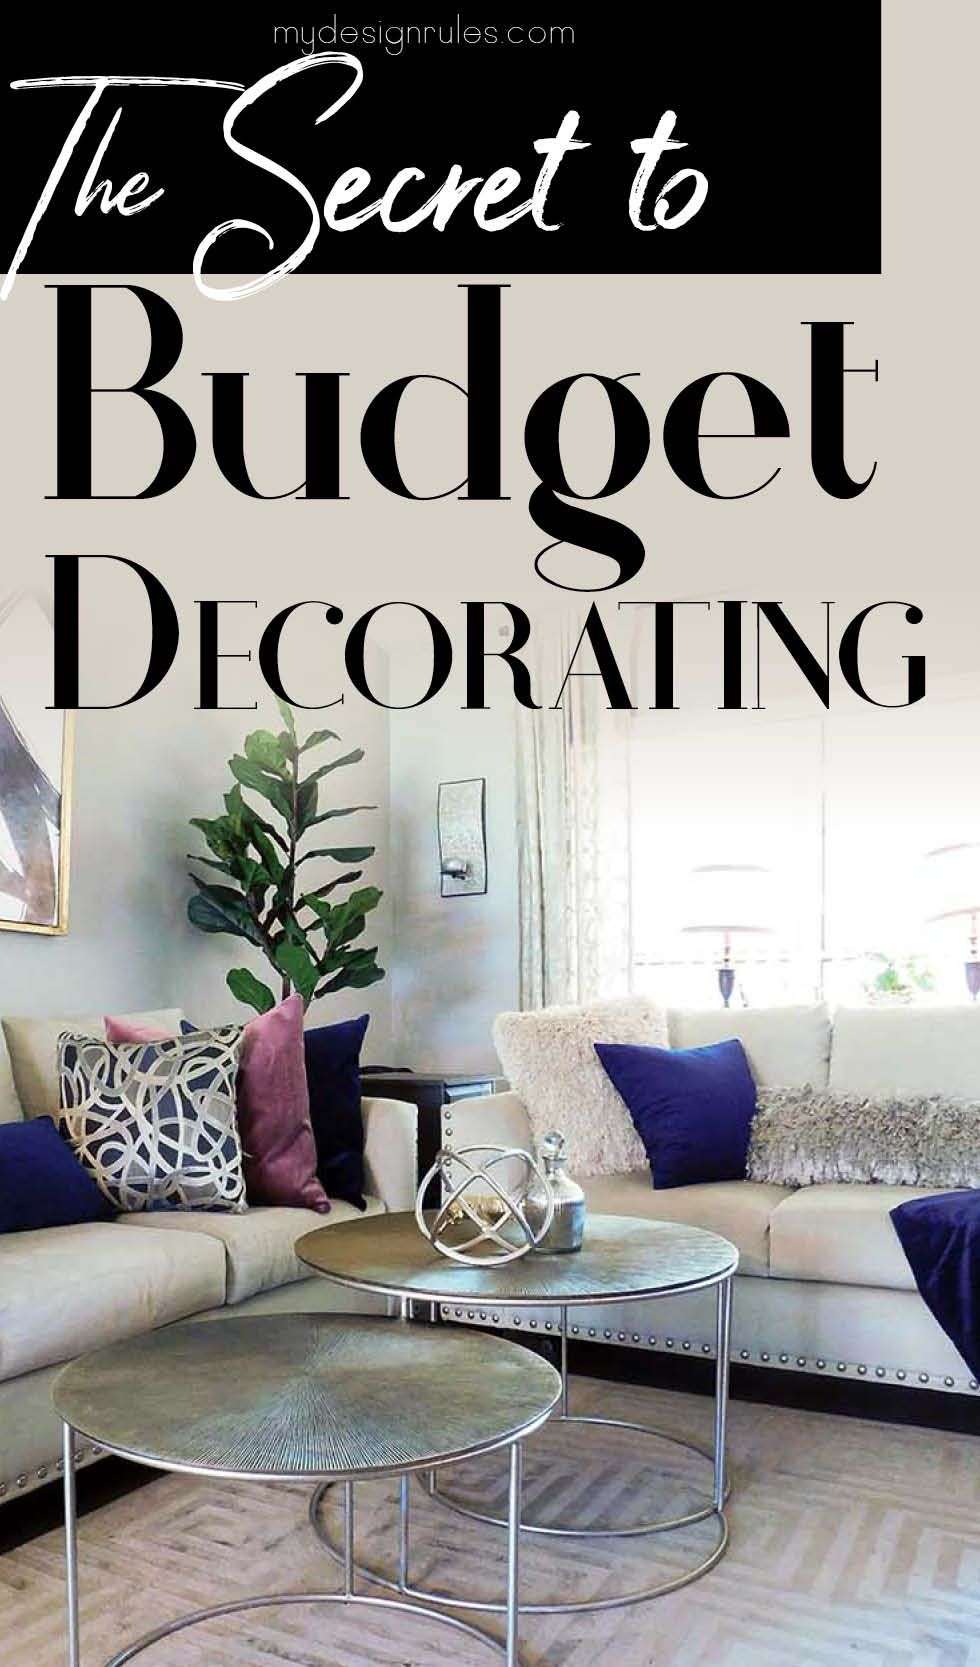 Pin On Diy Home Decor Projects To Make